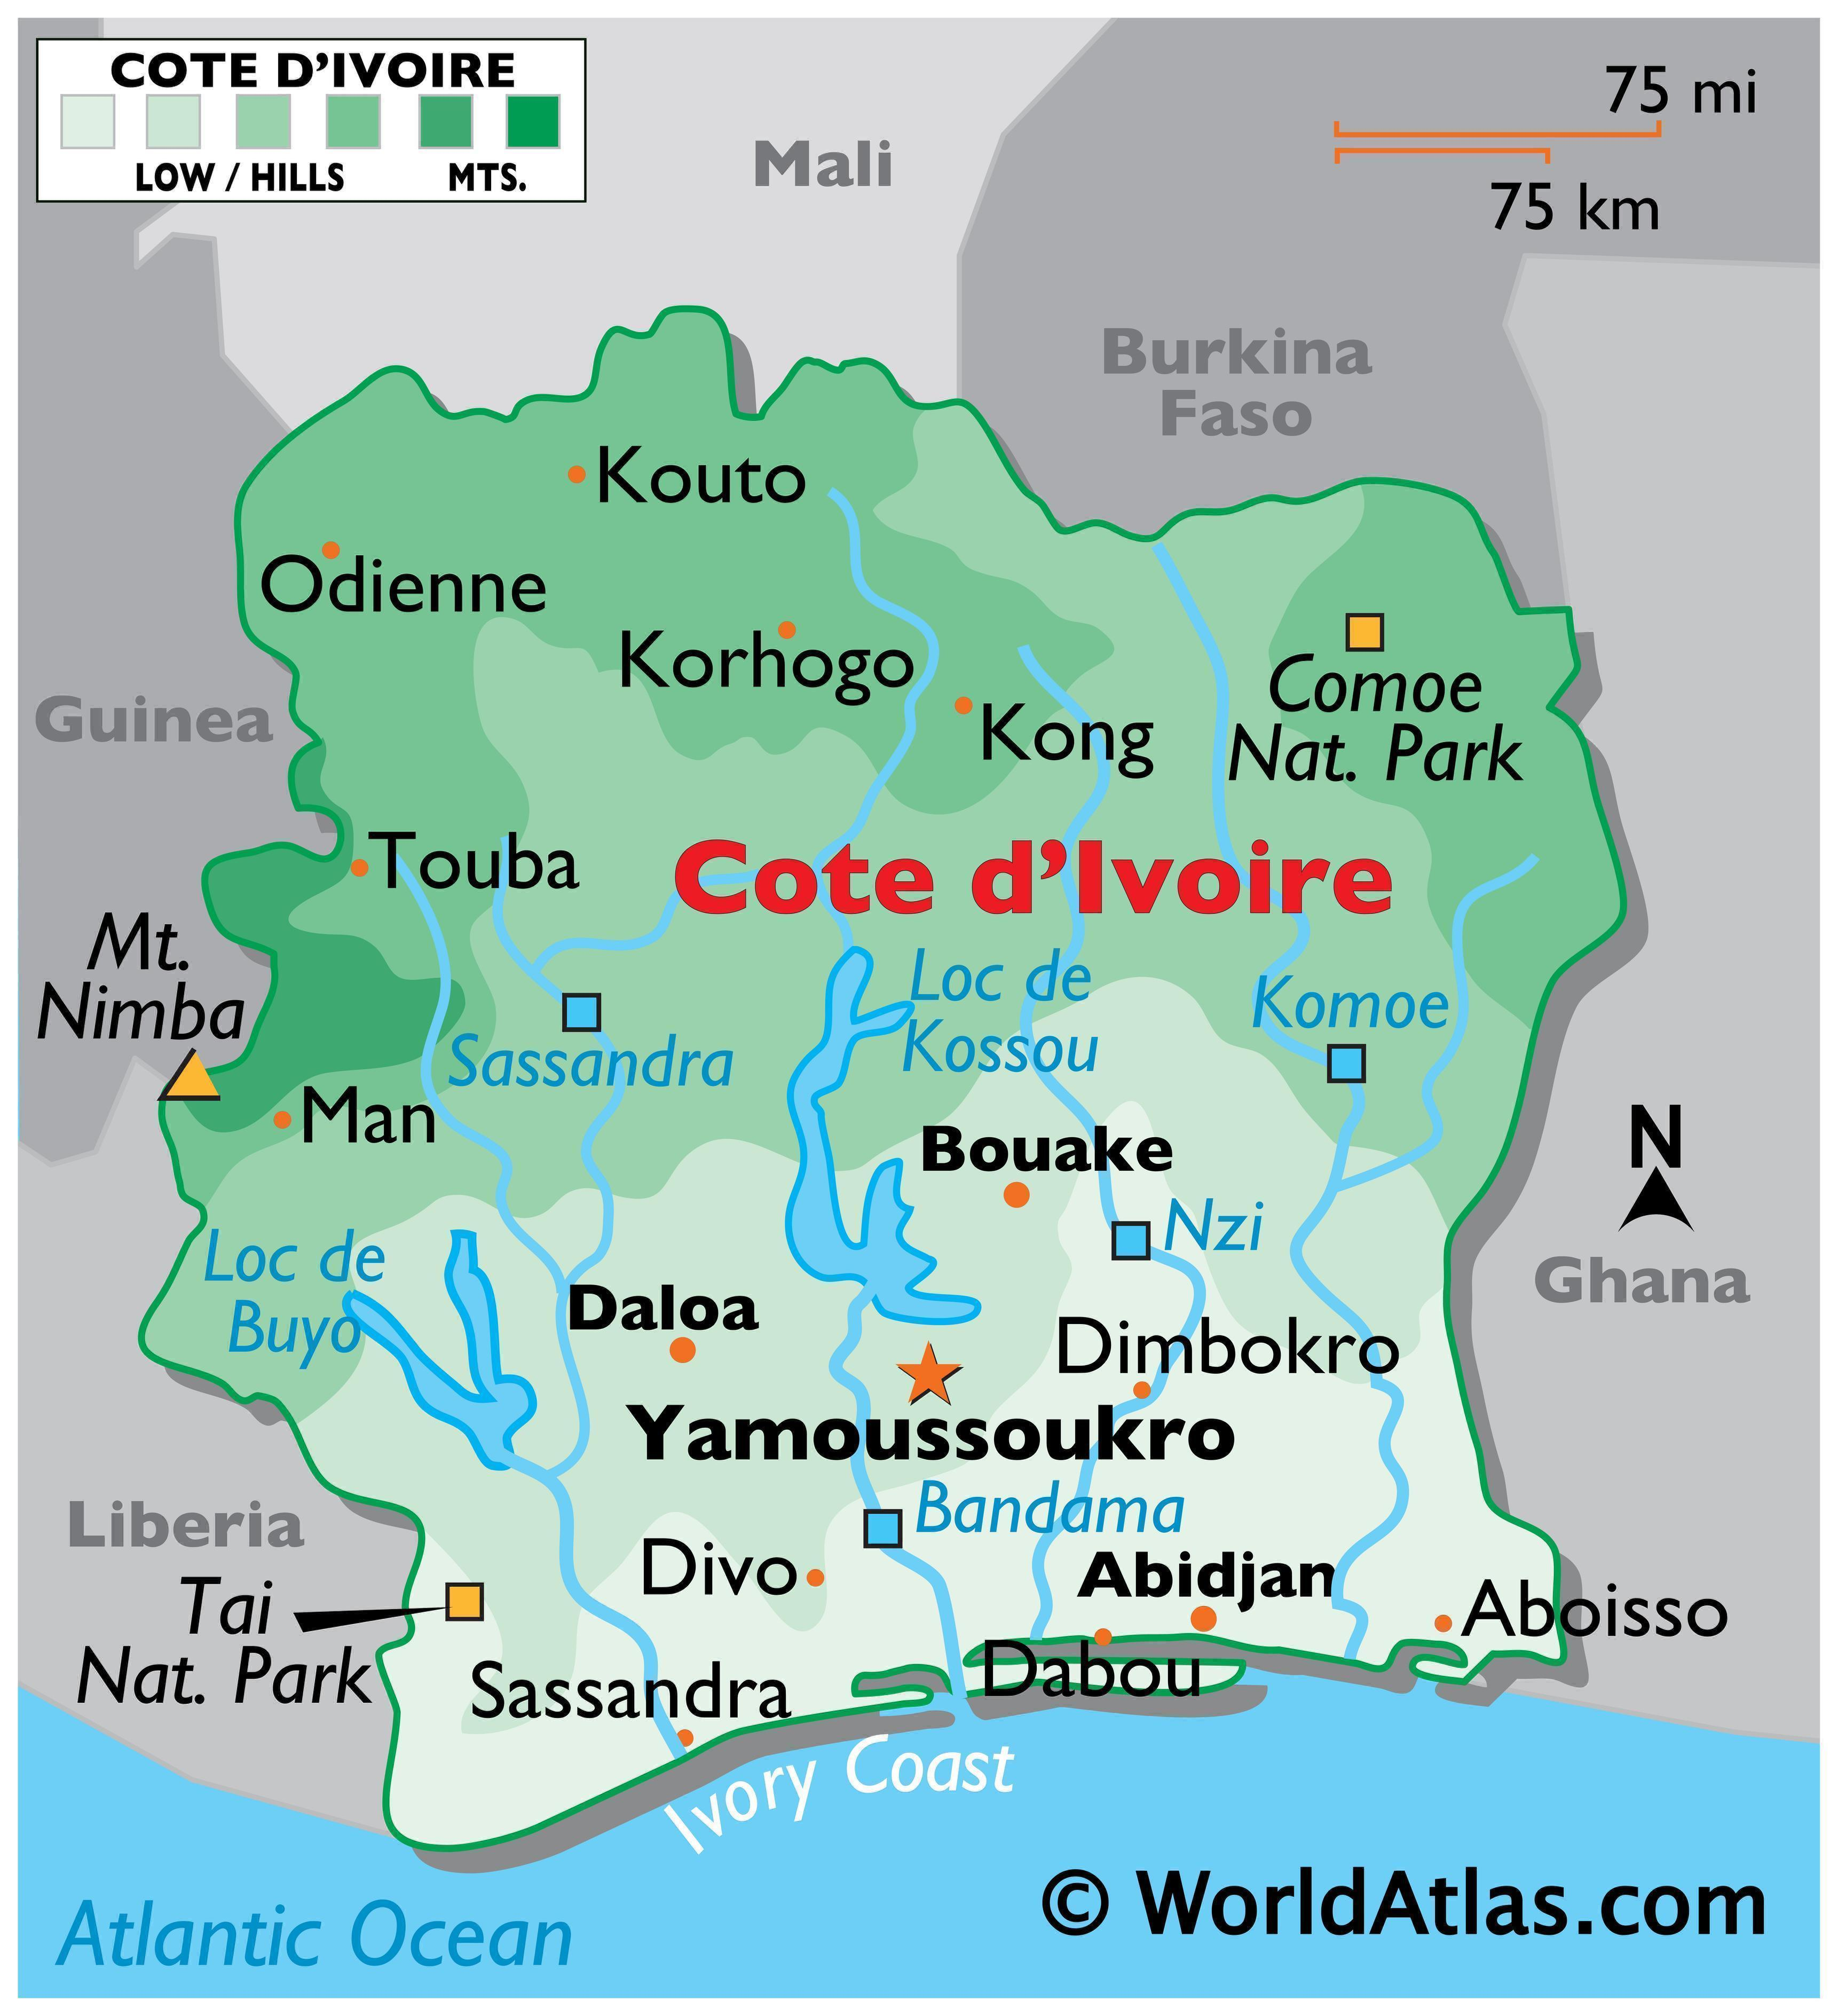 Physical Map of the Ivory Coast showing state boundaries, relief, major rivers, lakes, national parks, highest mountain, and important cities.